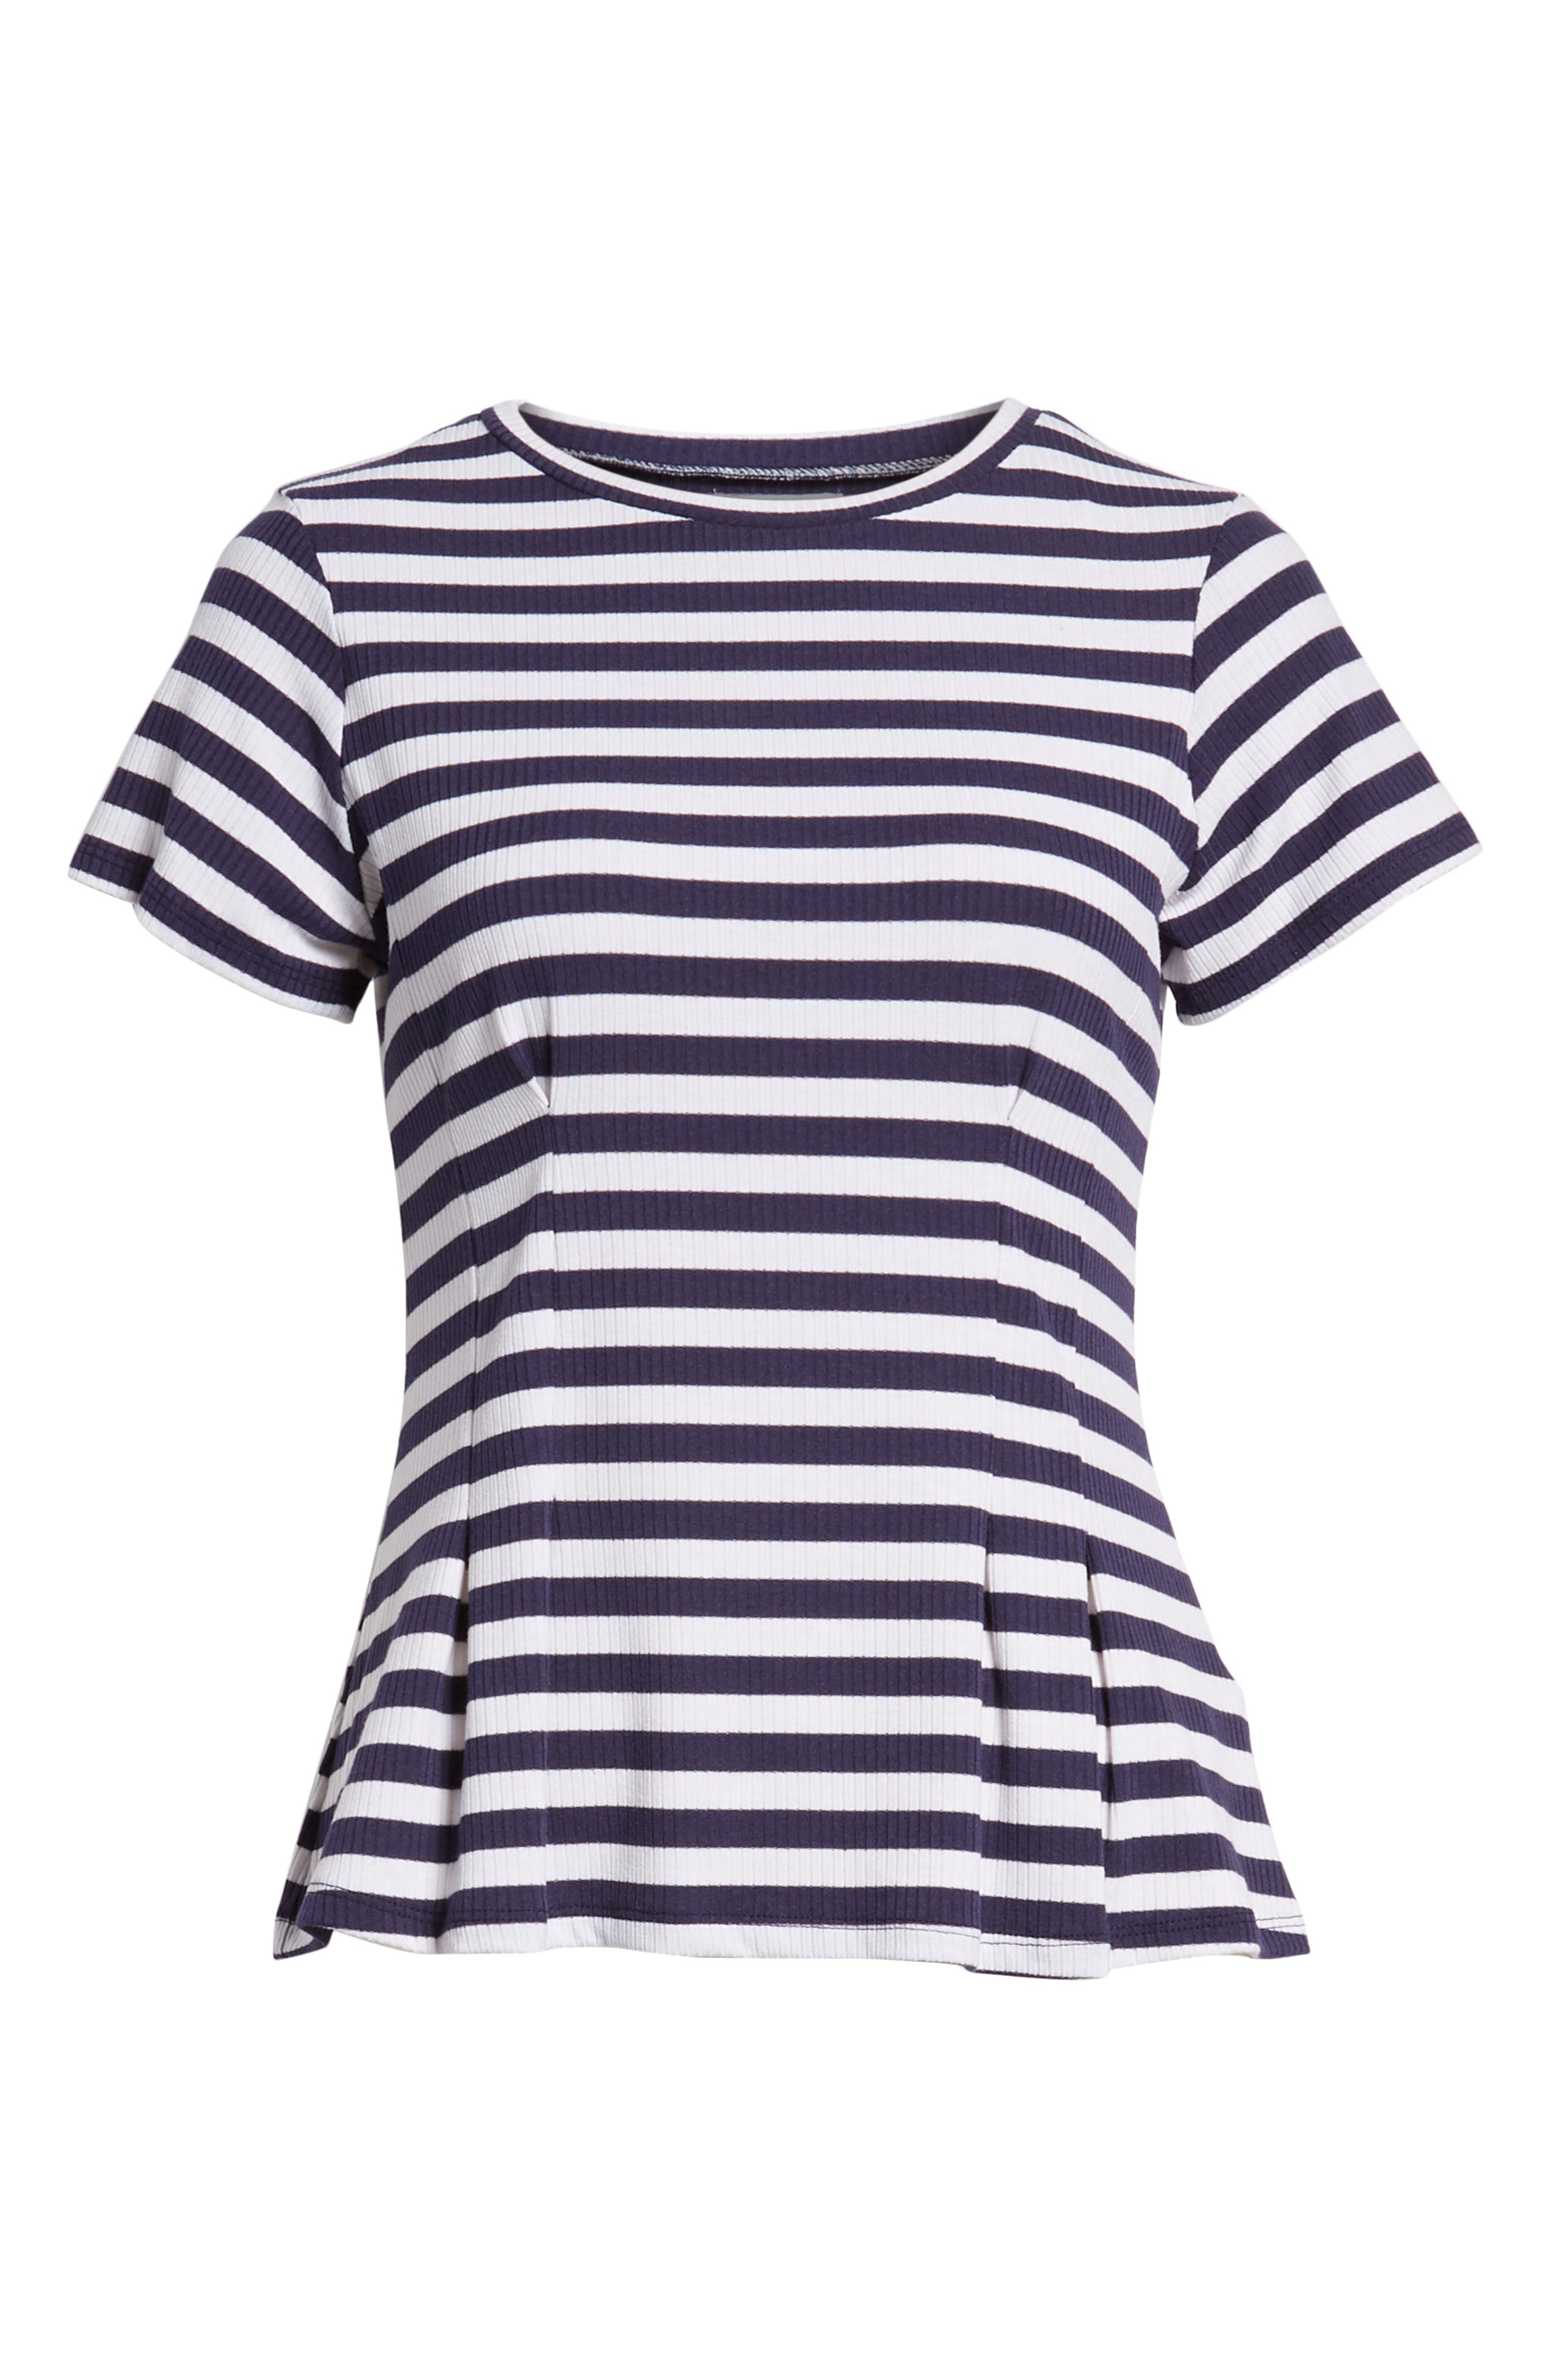 Stripe Peplum Tee,                             Alternate thumbnail 7, color,                             Navy/ White Stripe